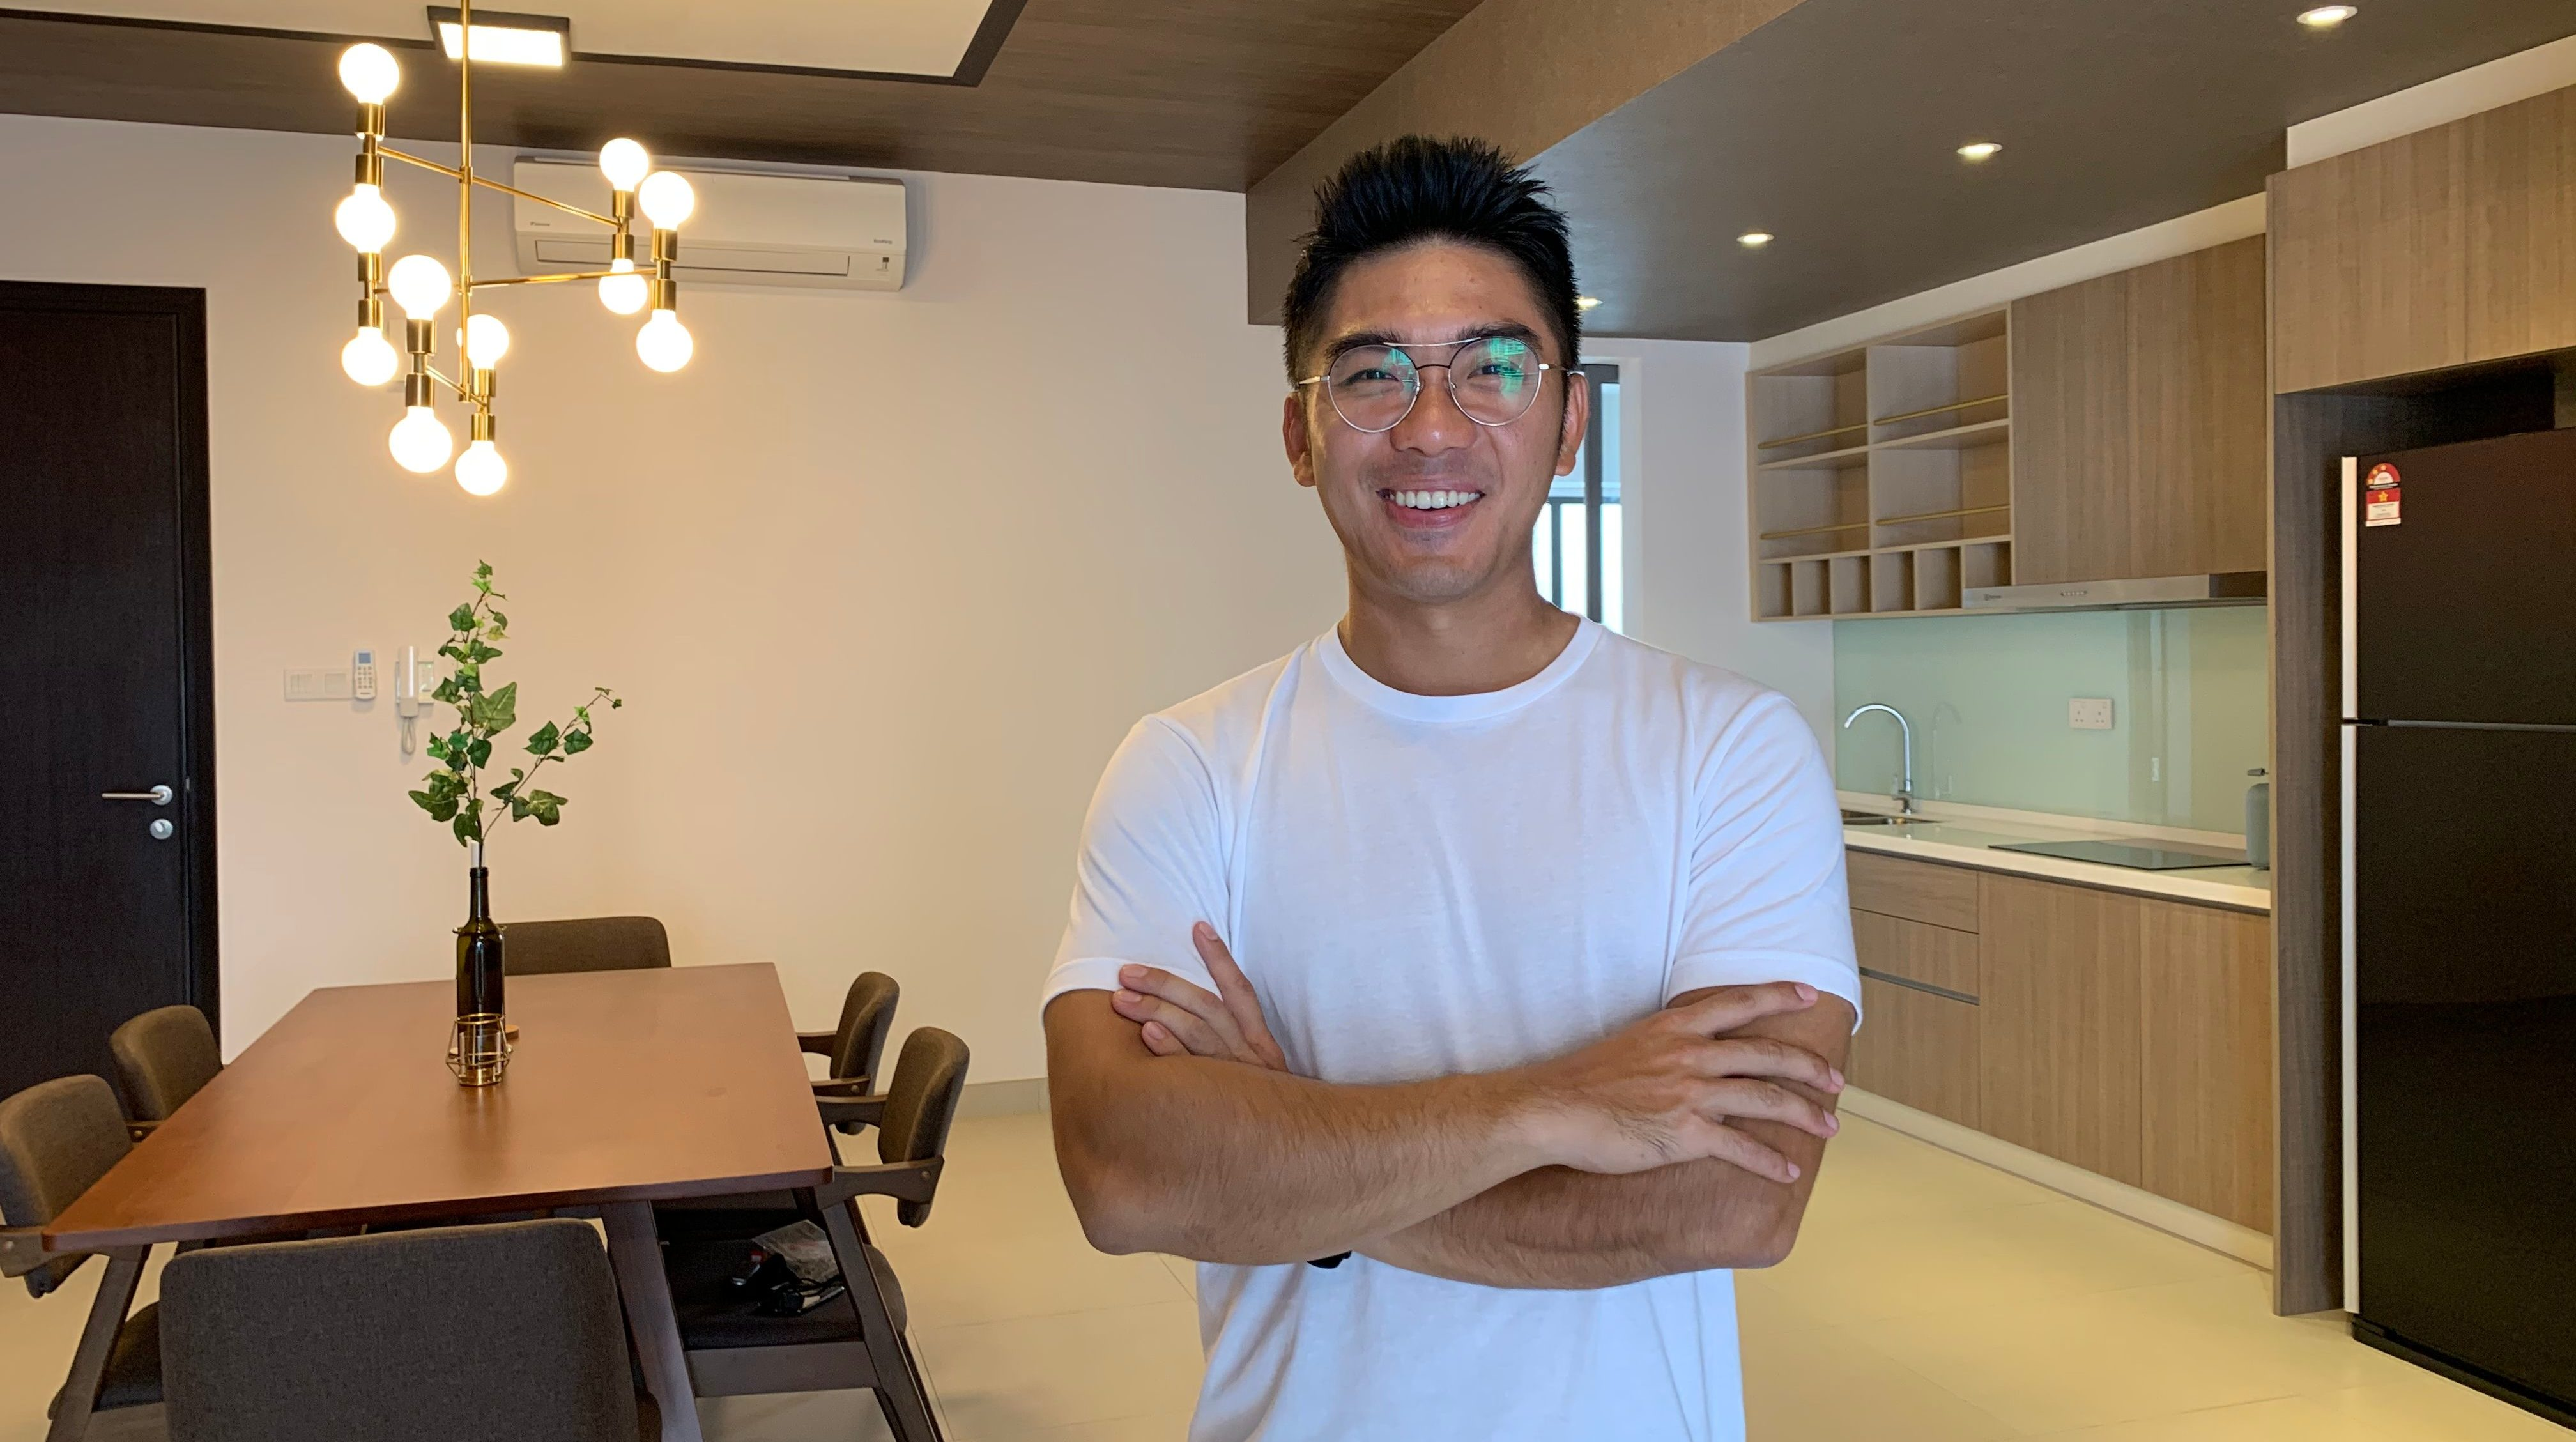 #StartupOfTheMonth: CozyHomes On Why Renting Tops Ownership